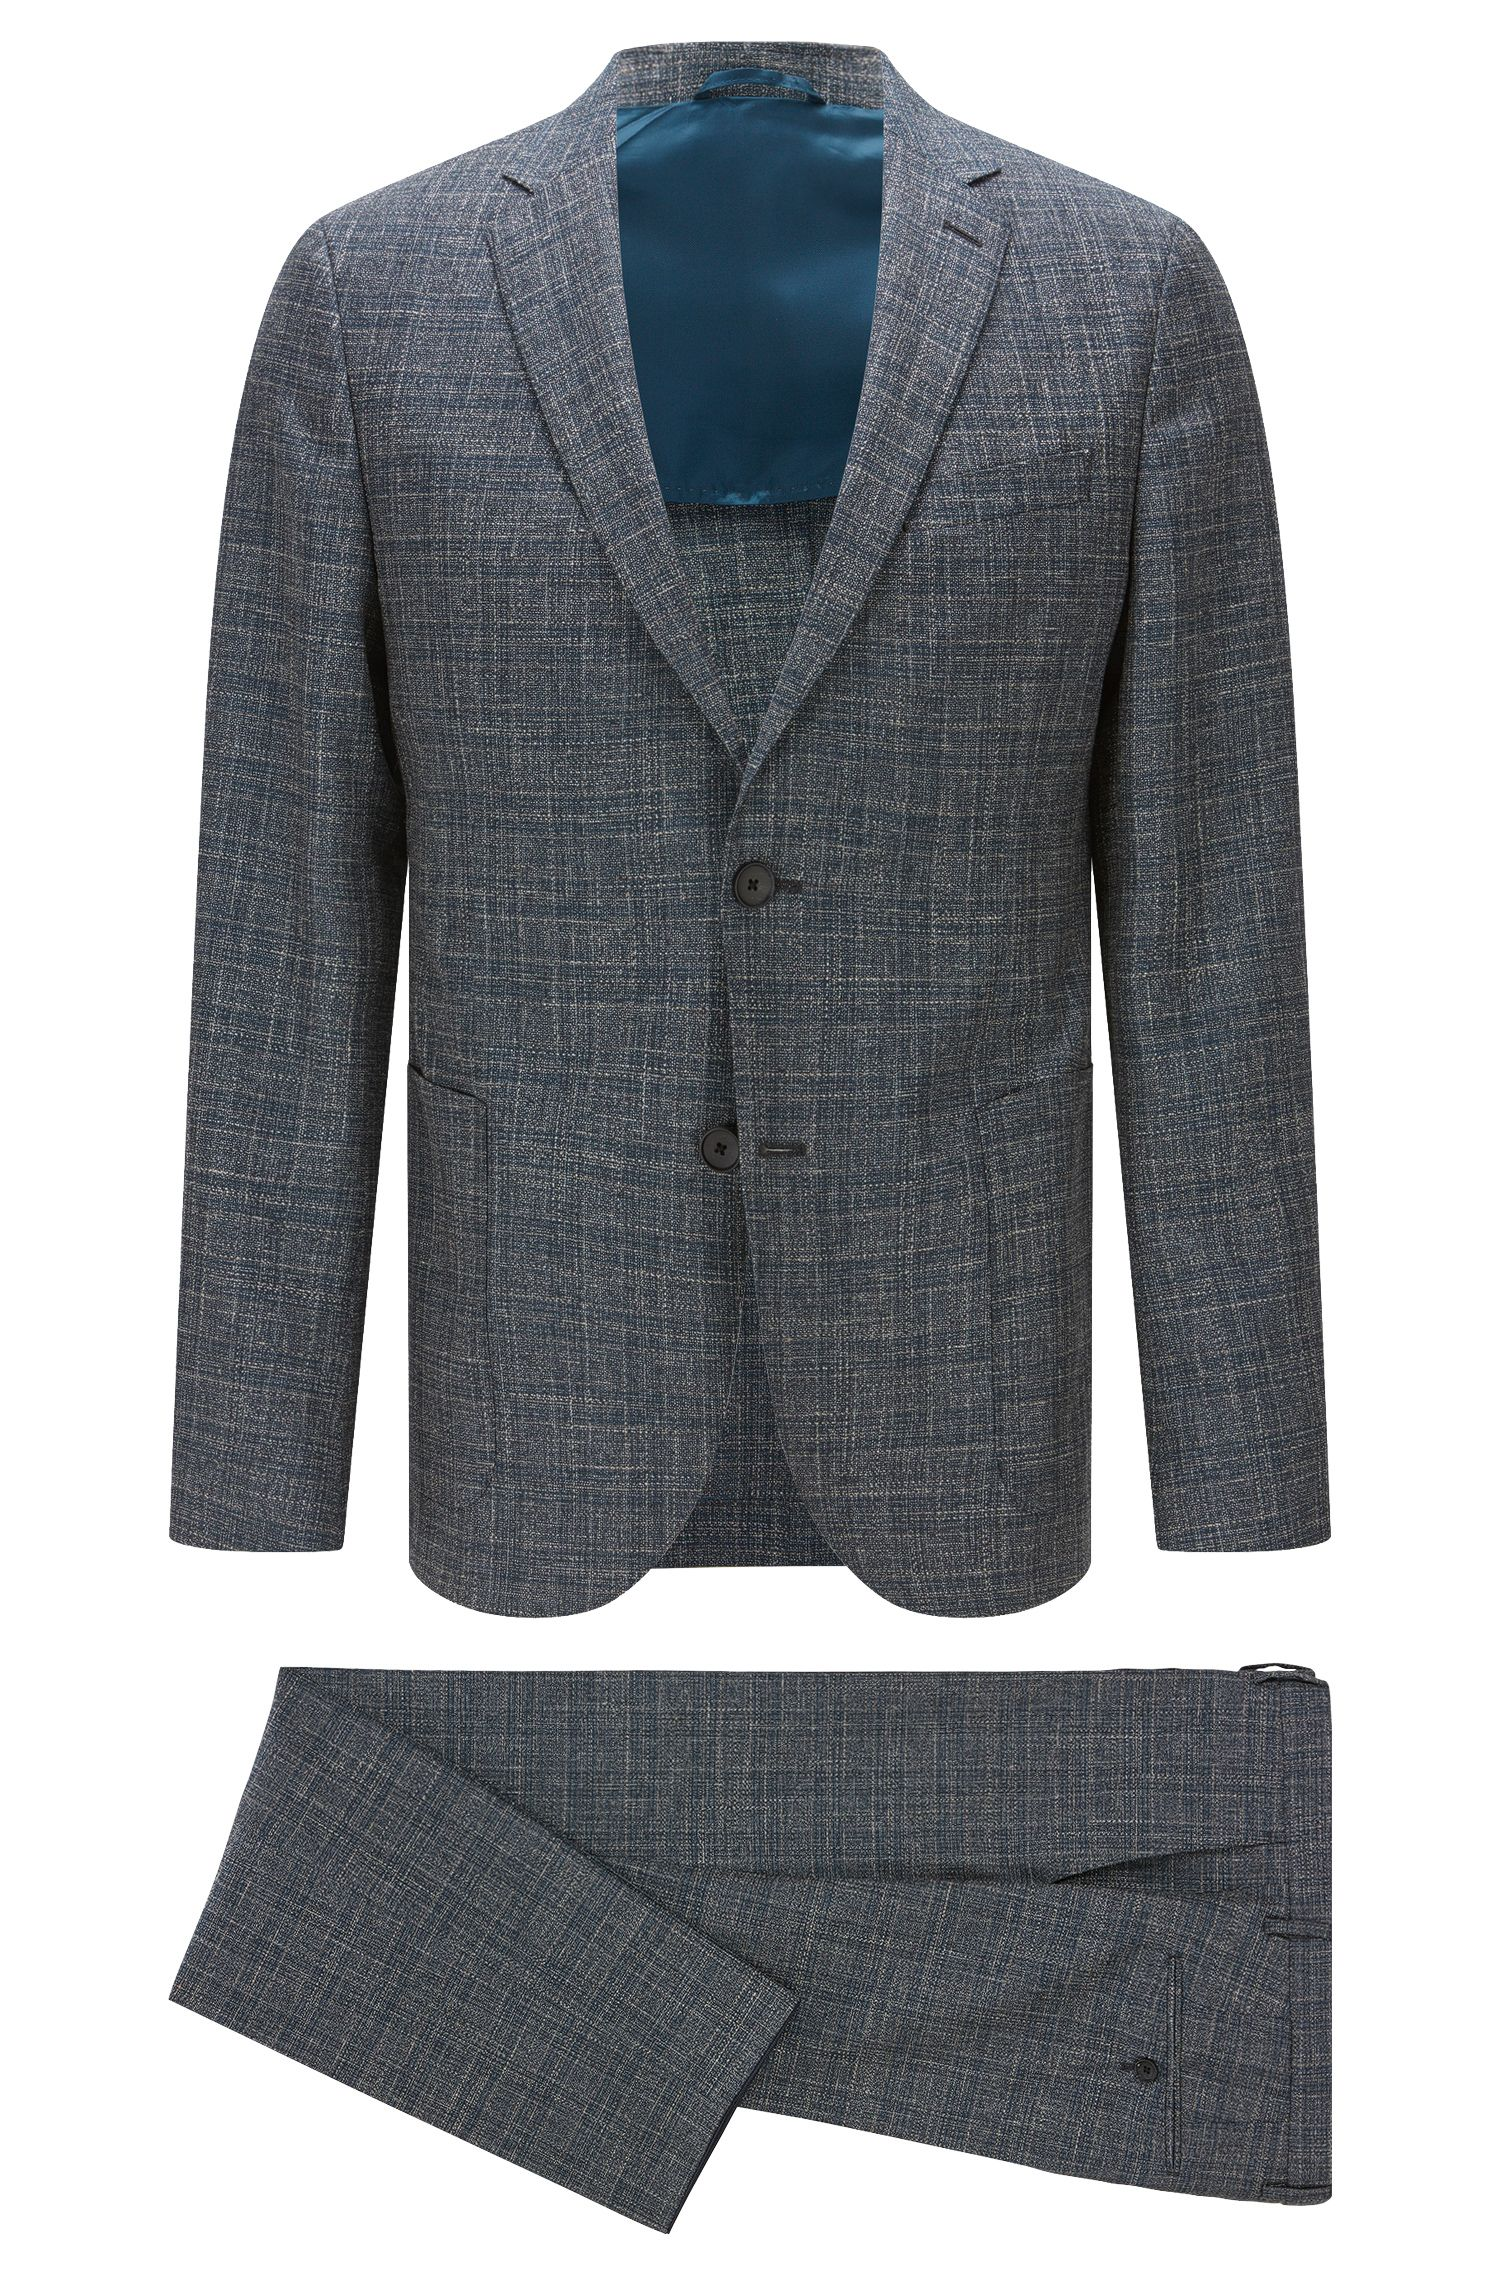 Virgin Wool Blend Suit, Slim Fit | Nalton/Bennno